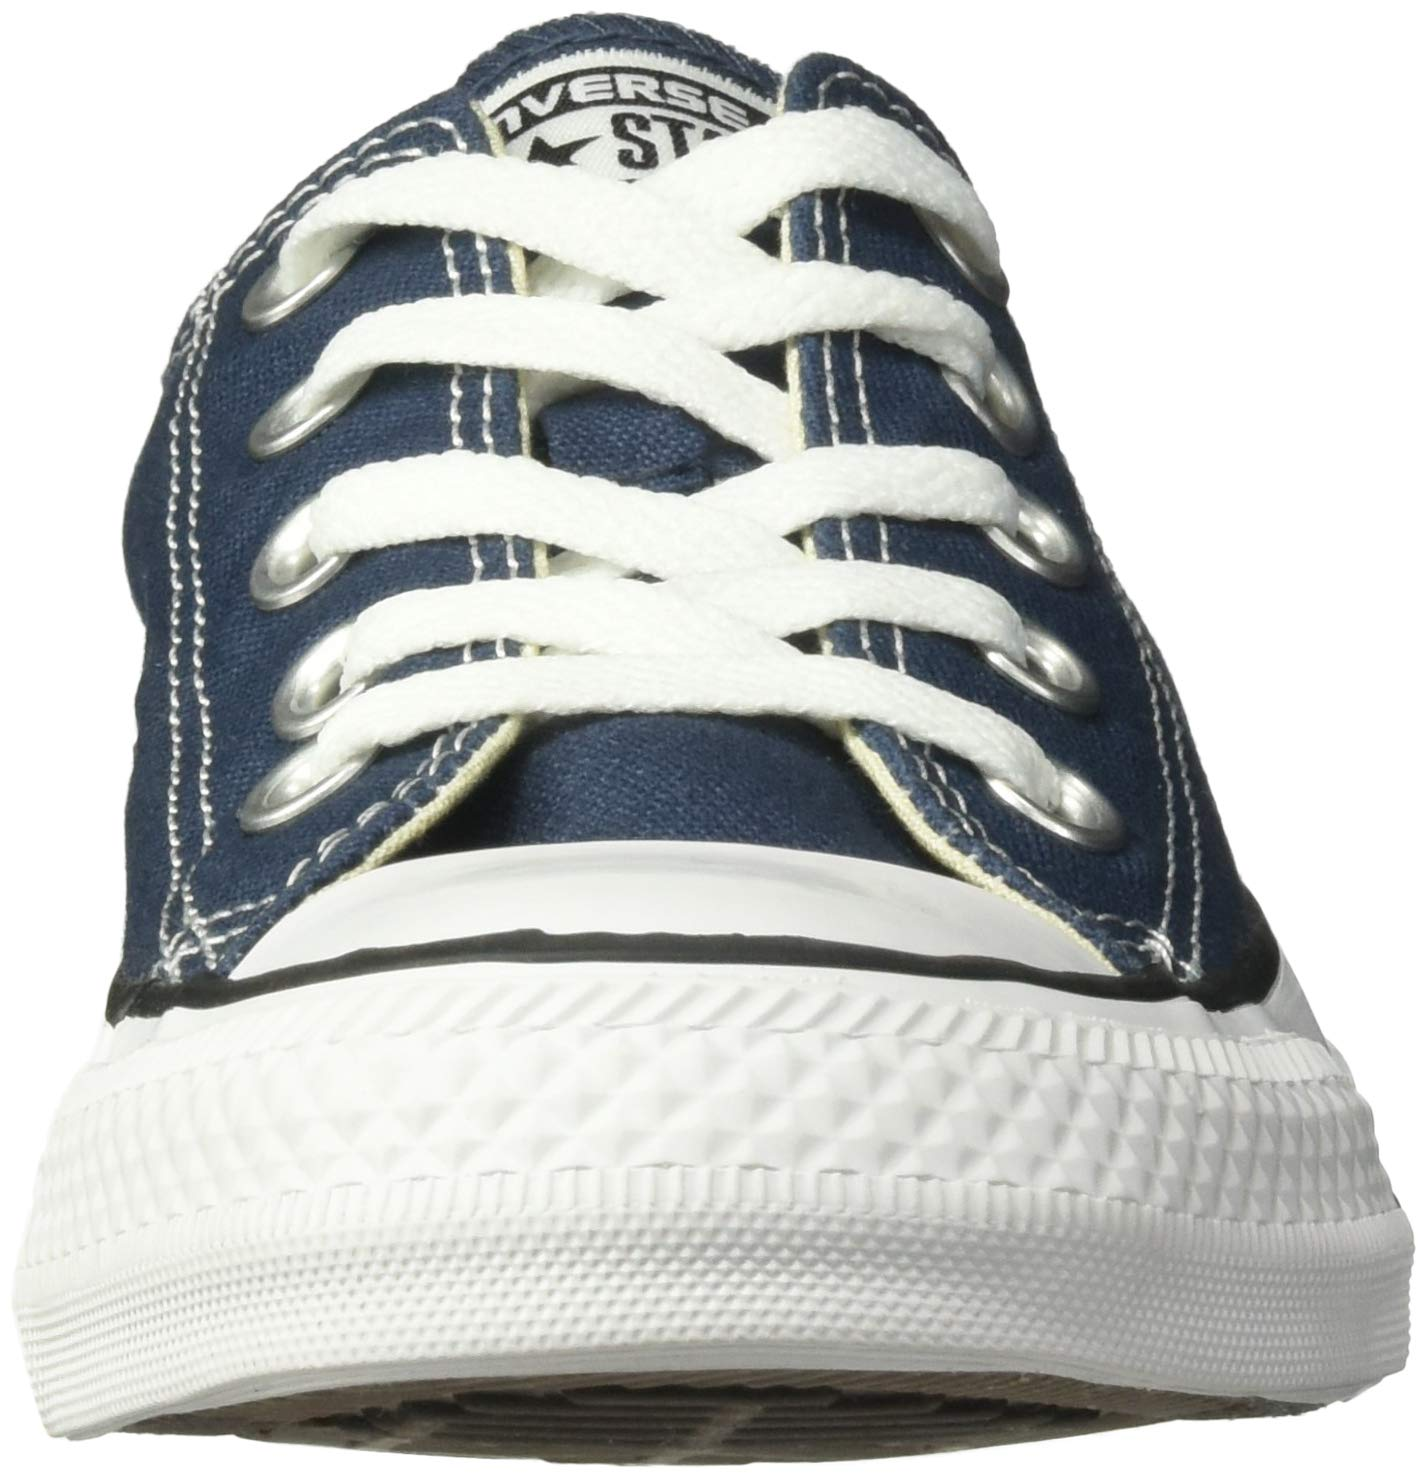 Converse Unisex Chuck Taylor All Star Low Top Navy Sneakers - 12MN-14WO B(M) US by Converse (Image #4)